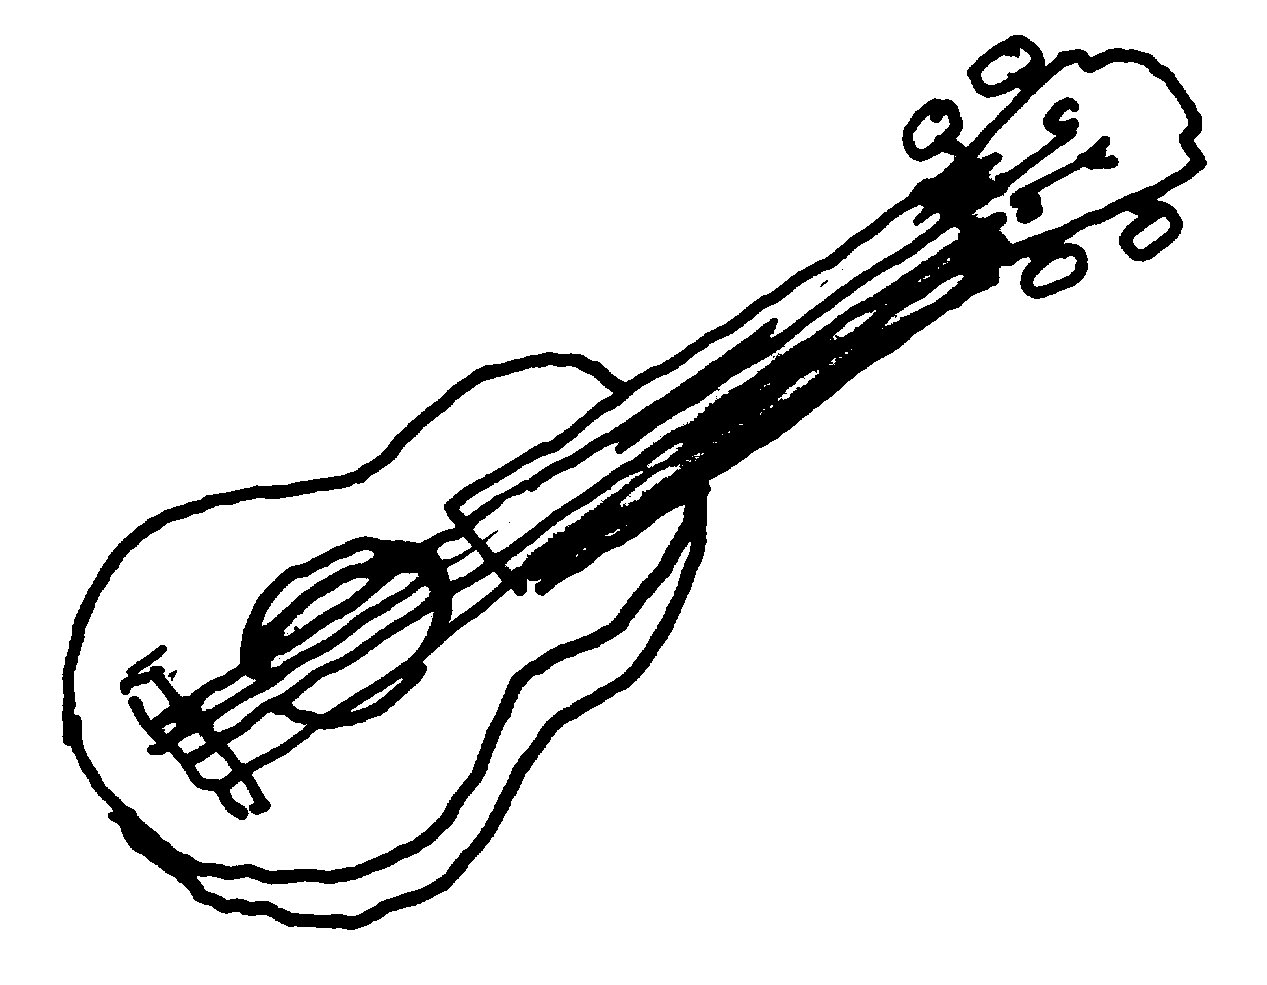 free music instruments guitar clipart